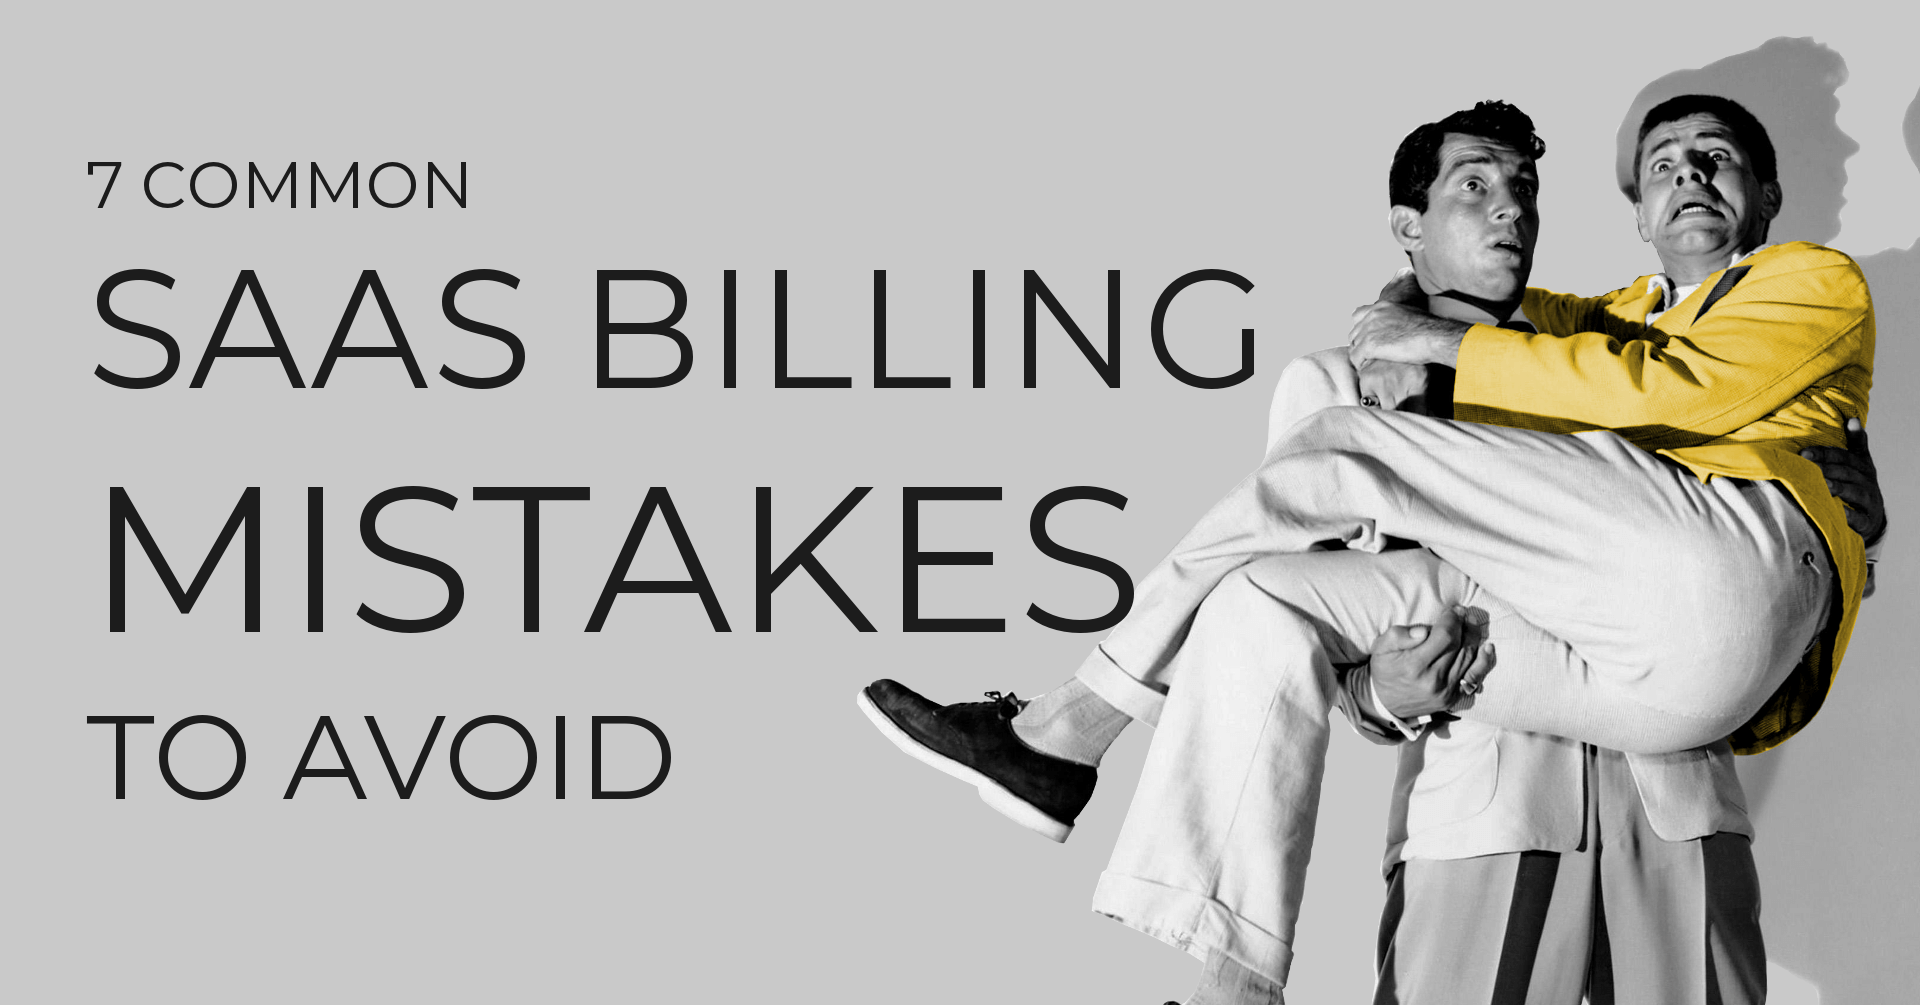 7 common SaaS billing mistakes to avoid